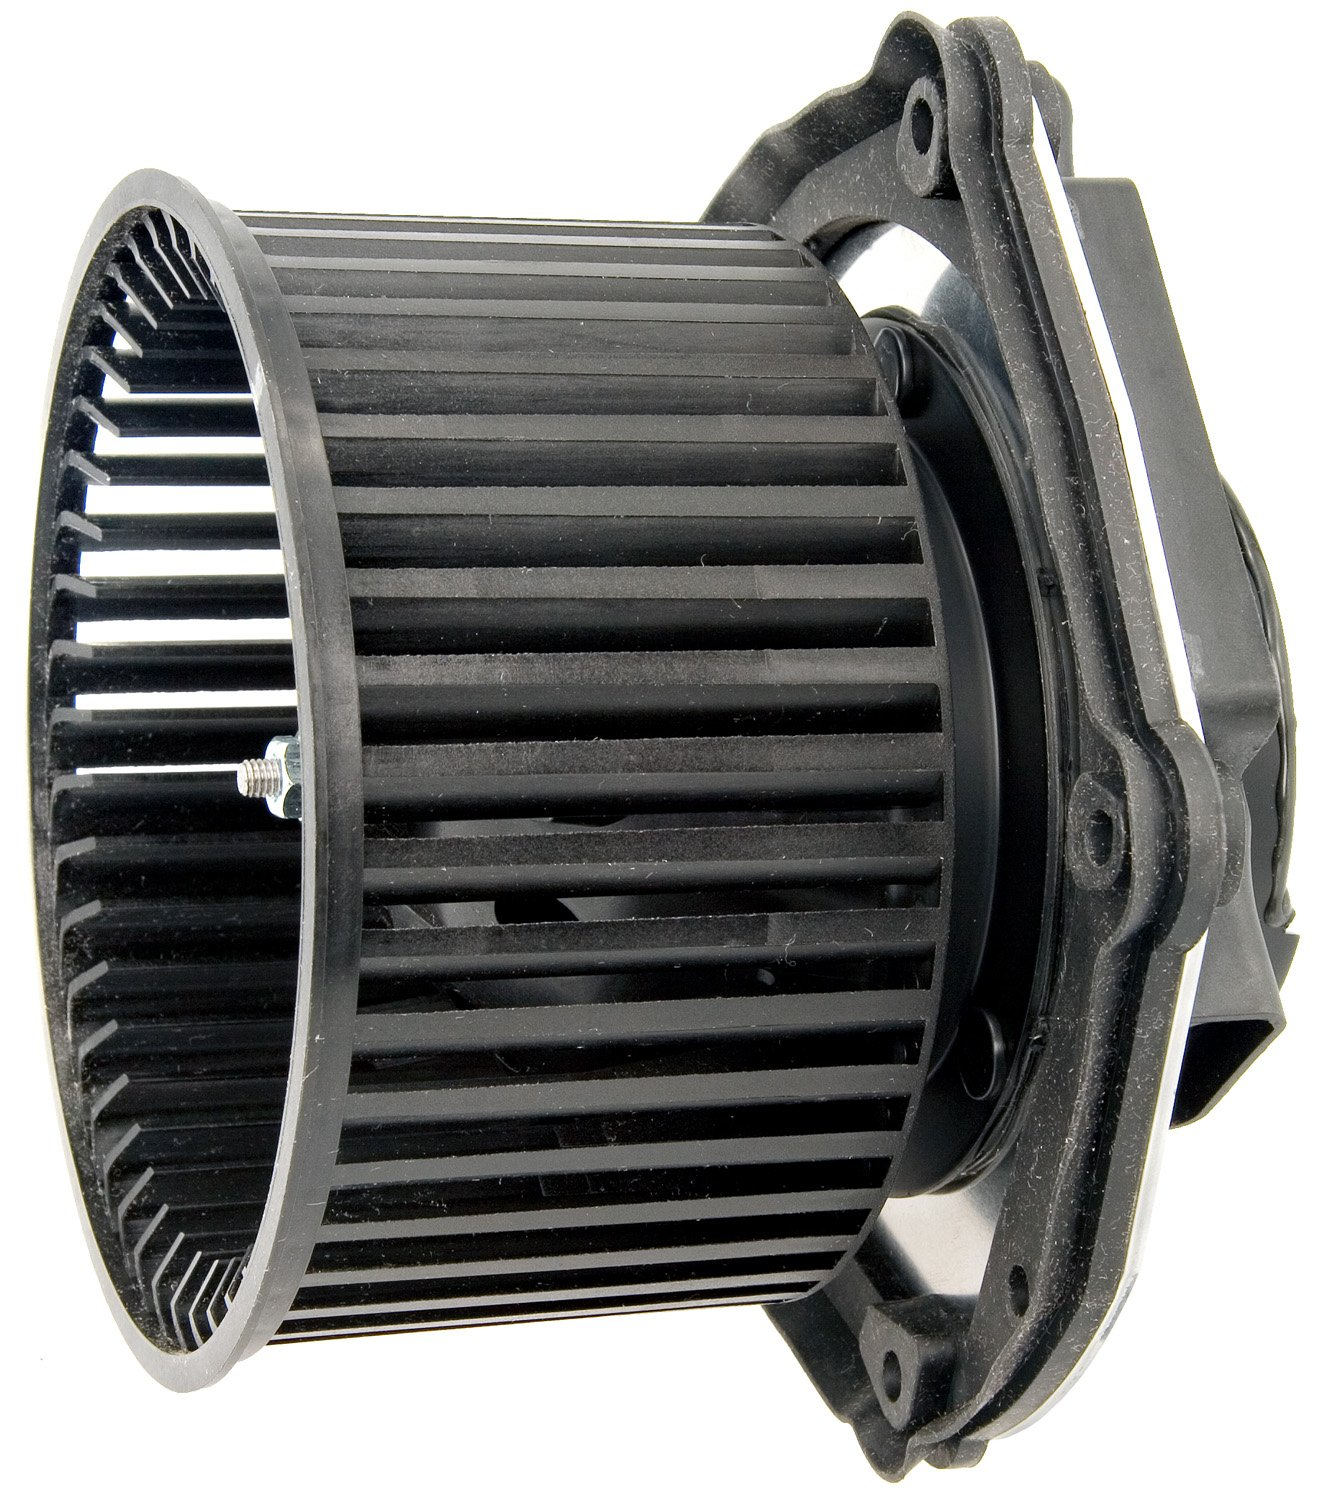 Four Seasons/Trumark 35121 Blower Motor with Wheel by Four Seasons/Trumark